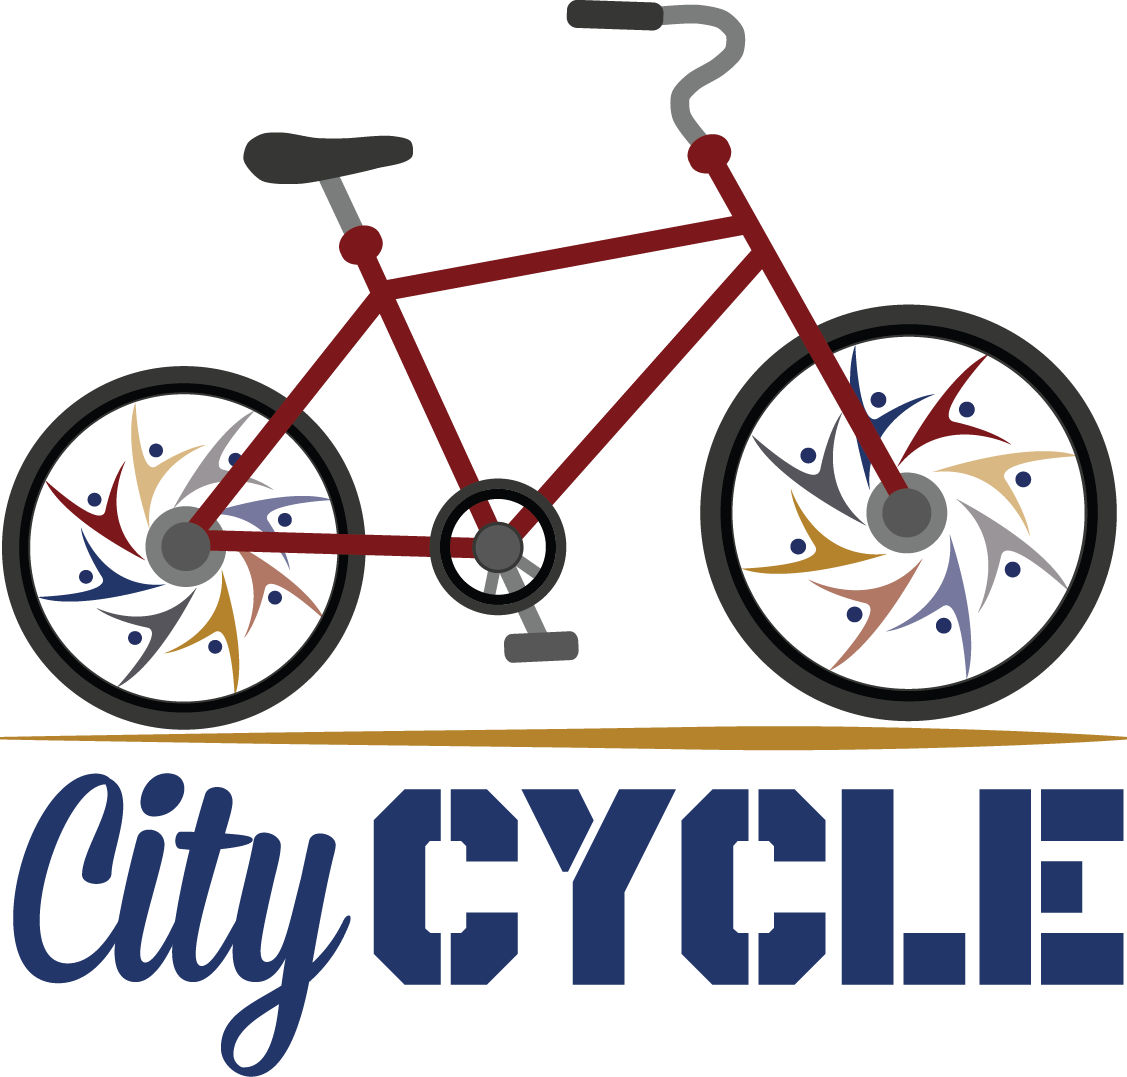 Cycle clipart name. City bike share of